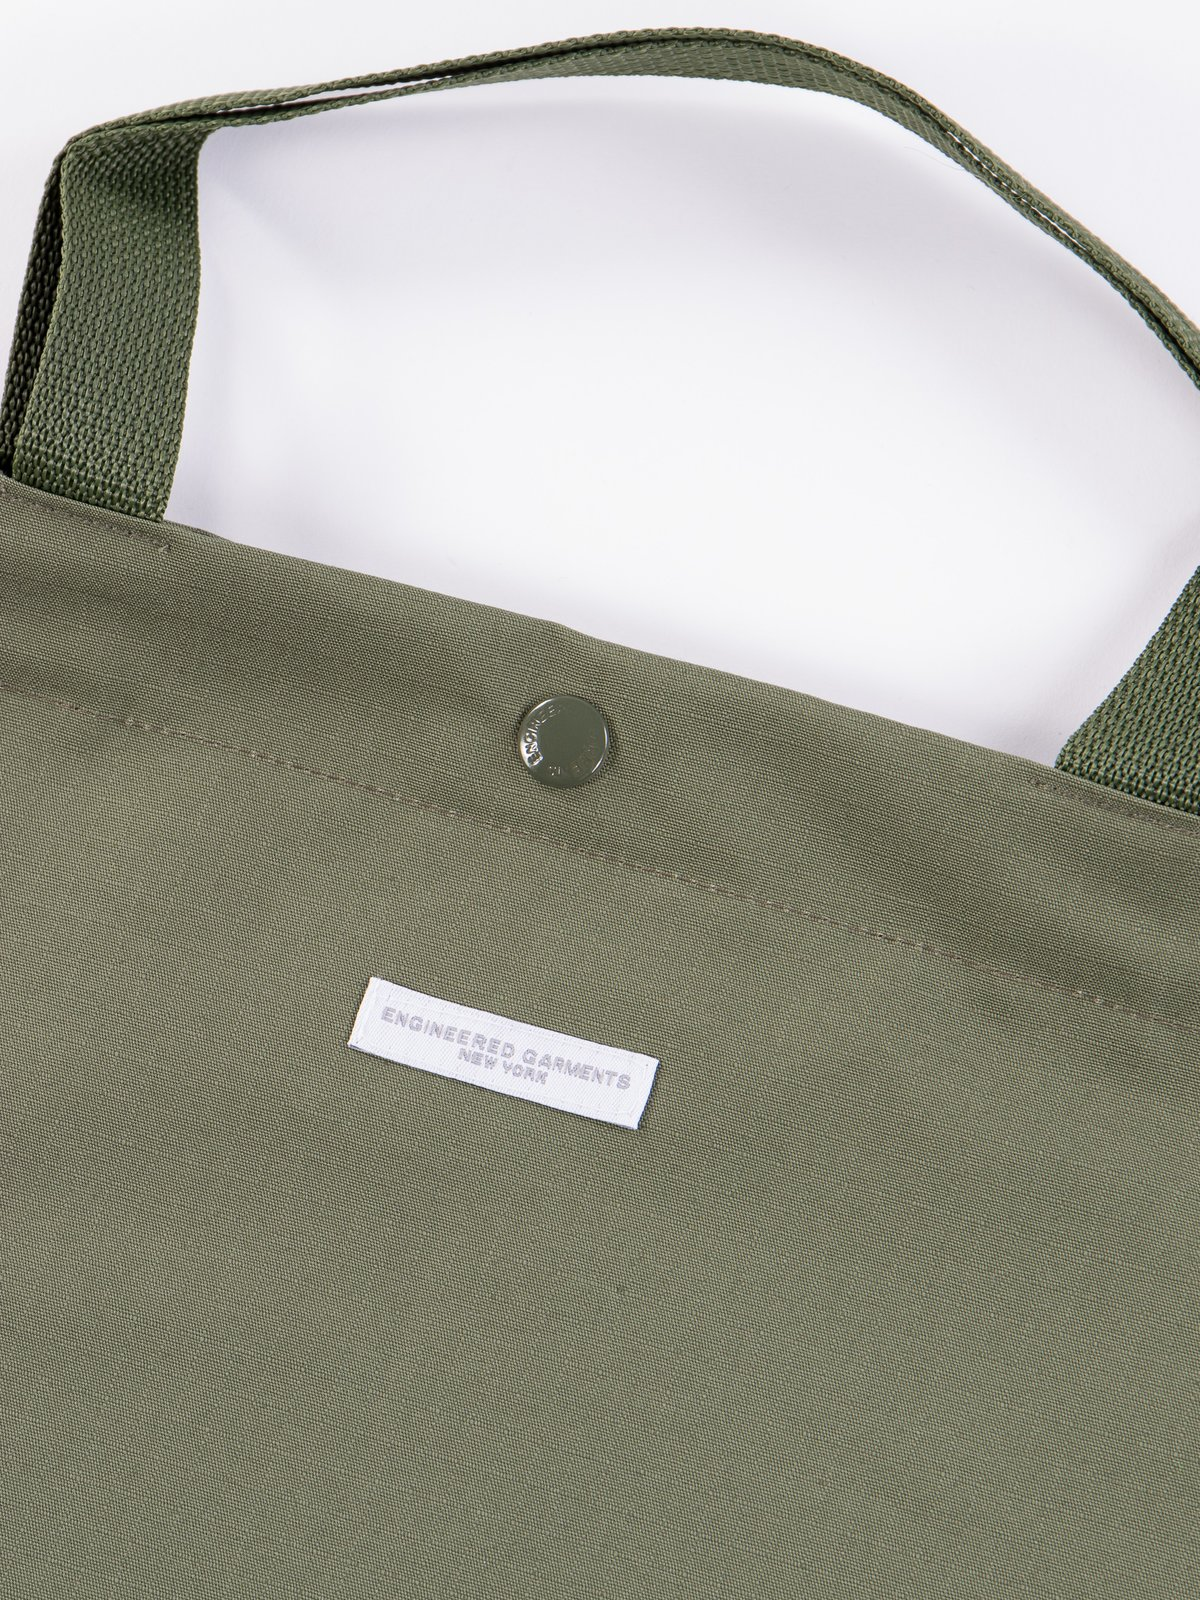 Olive Cotton Ripstop Carry All Tote - Image 2